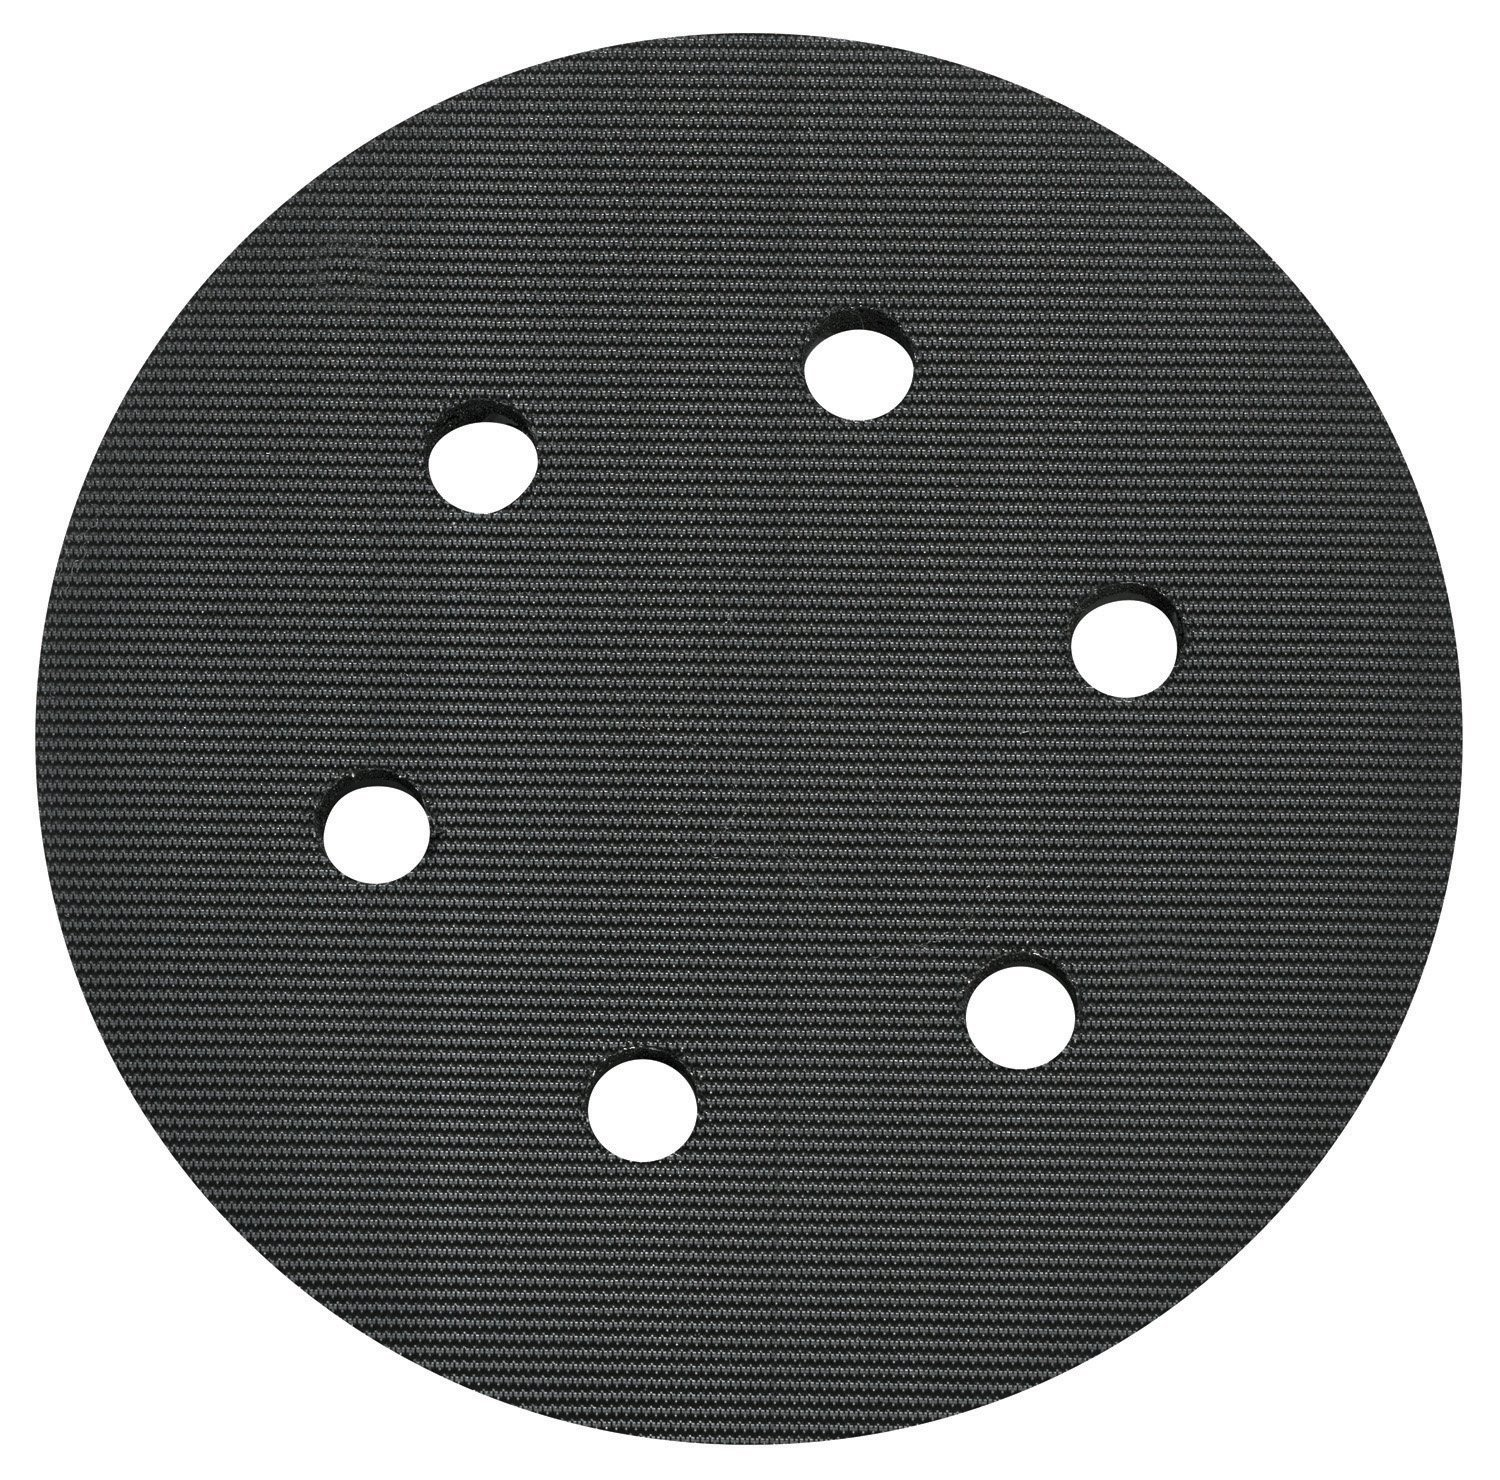 PORTER-CABLE 18001 6-Inch 6-Hole Hook and Loop Standard Pad for 7336 and 97366 Random Orbit Sander by PORTER-CABLE